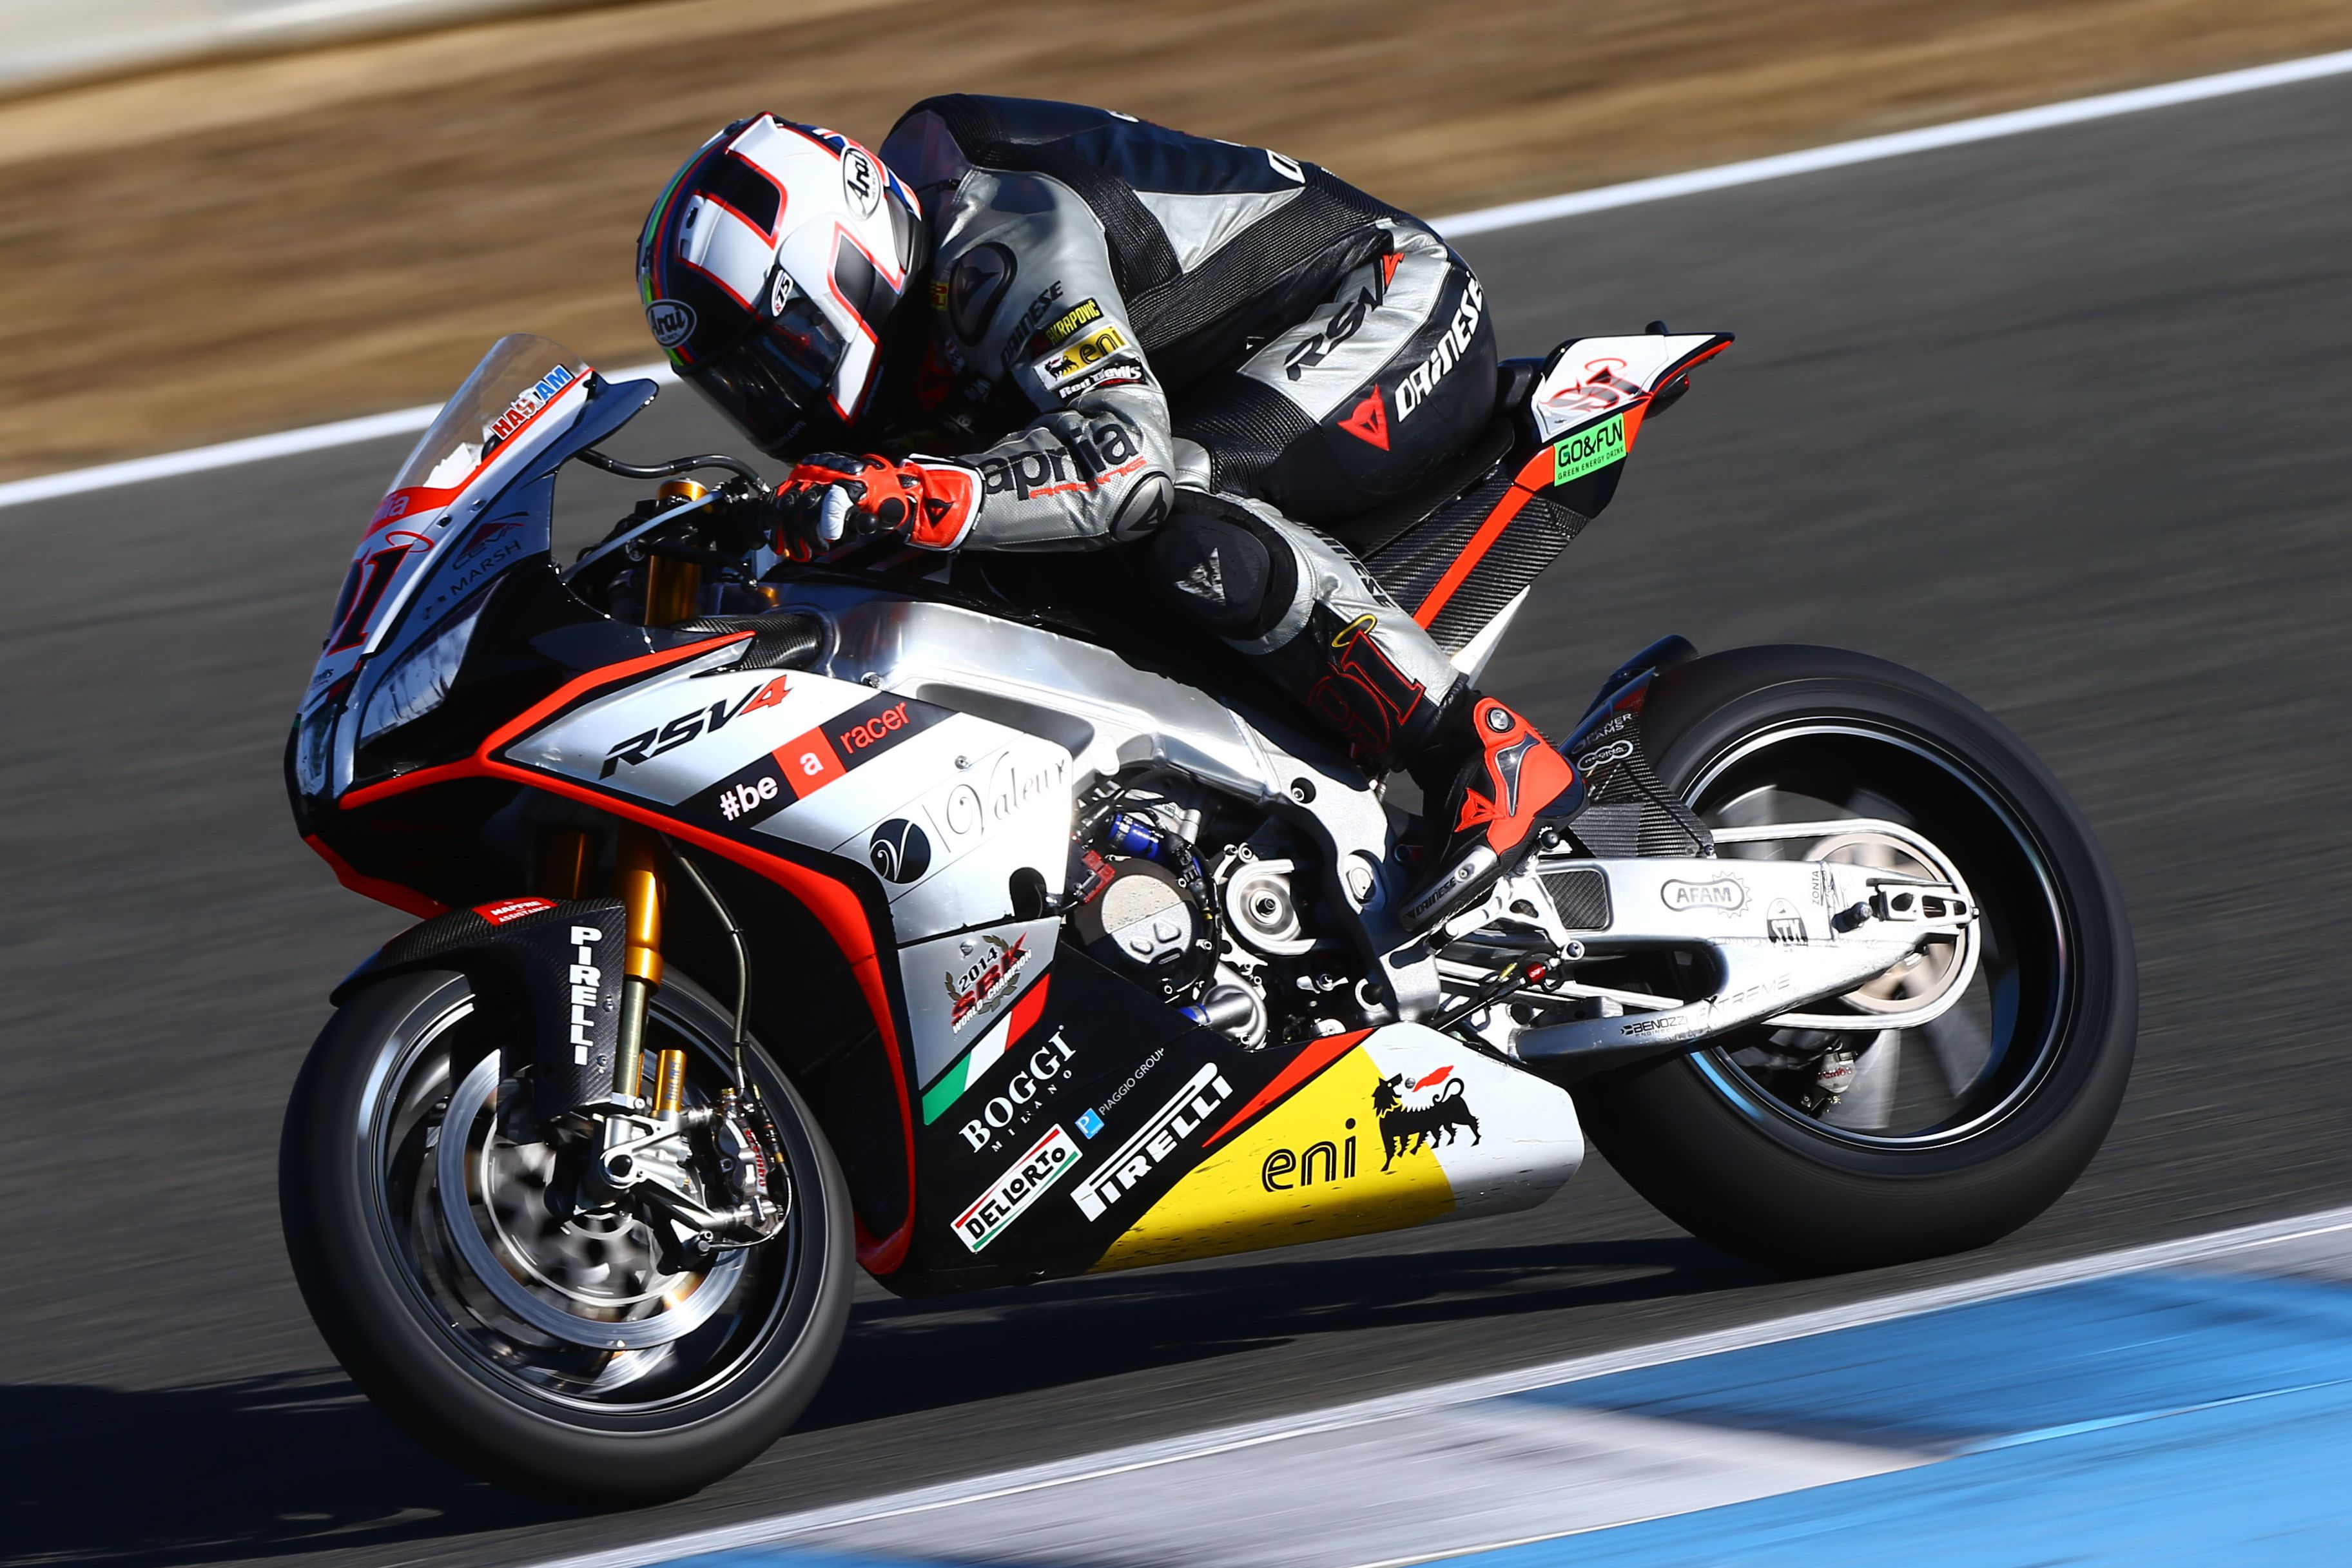 Racing Bike Top 10 Race Bikes Of 2015 | Visordown